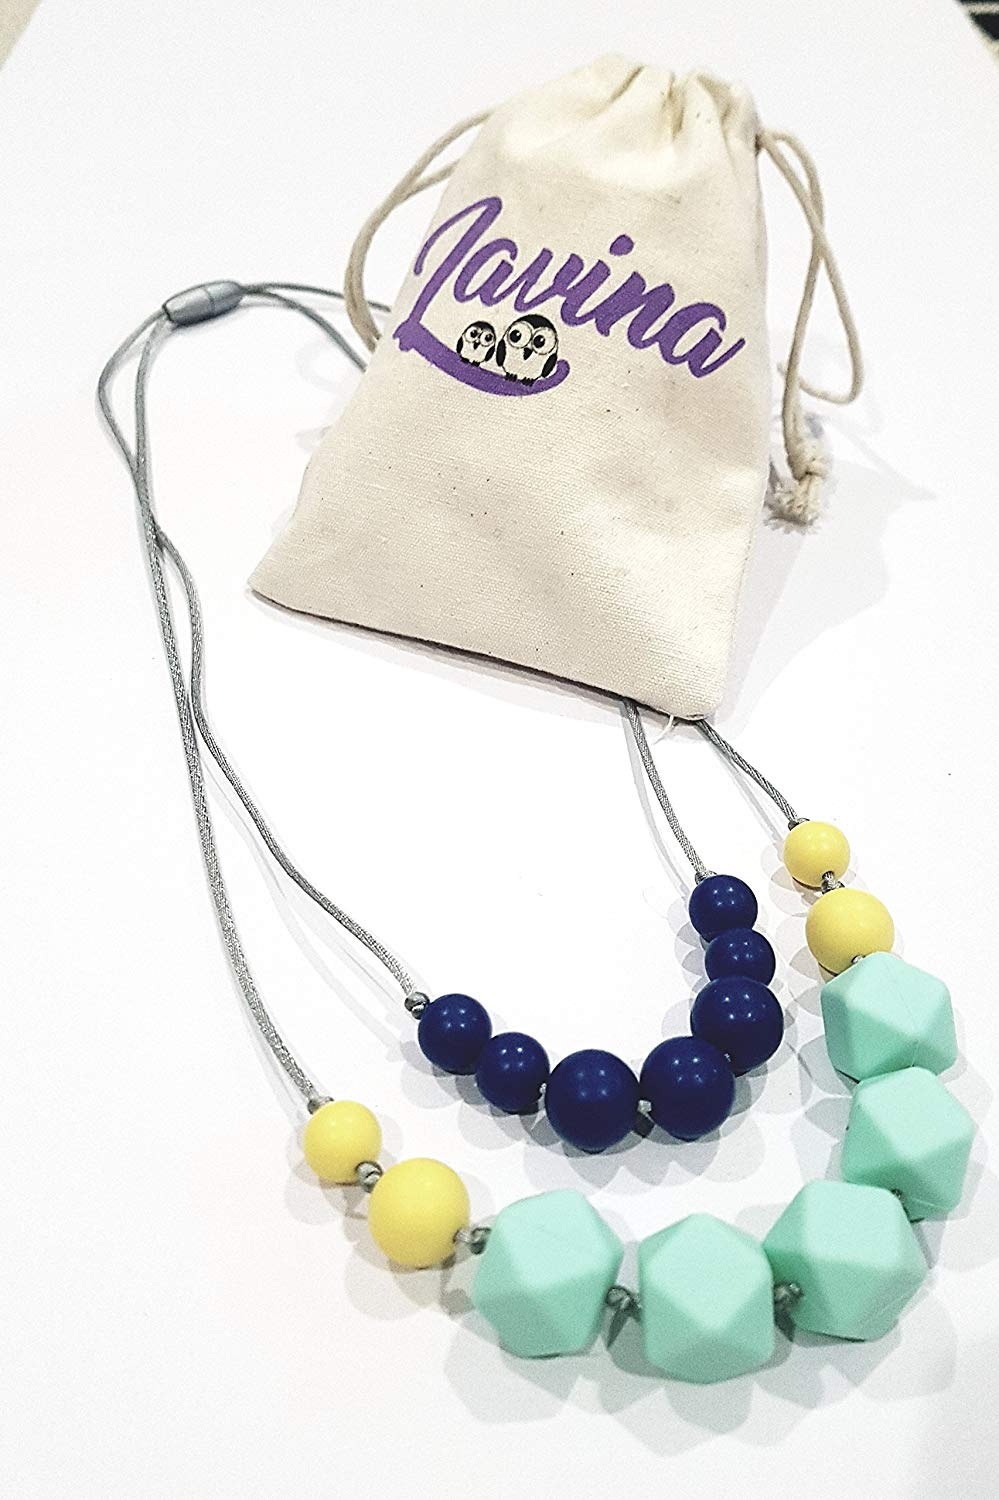 Baby Teething Necklaces, Lavina Mom Nursing Necklace with Food Grade, FDA Approved, BPA Free Silicone Beads, 4 Stylish Designs with Colorful Beads, A Perfect Baby Shower Gift, Necklaces for Women